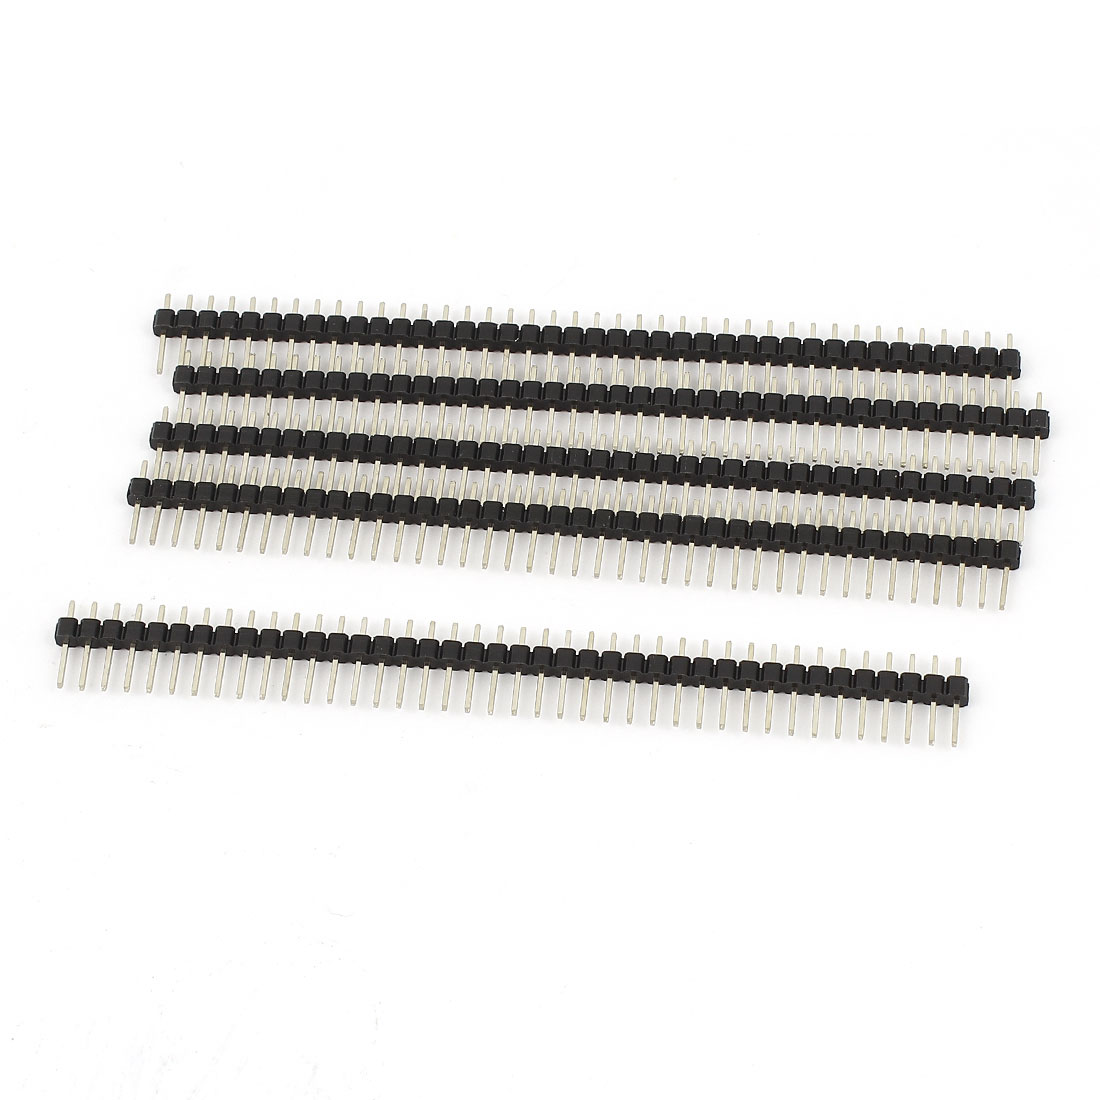 5 Pcs 1x40 Pin 2.54mm Pitch Straight Male Breadboard Connector Header